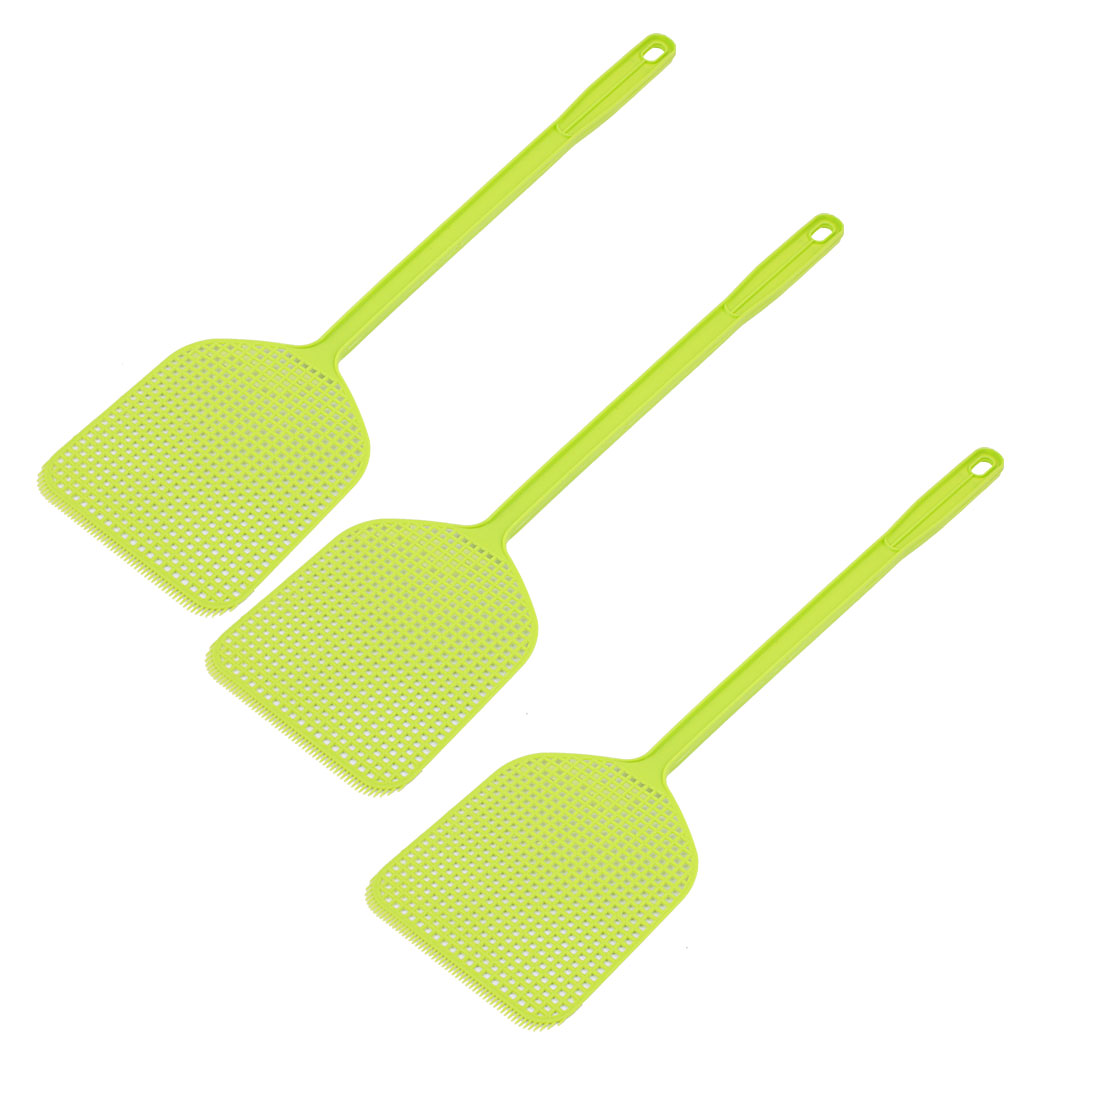 Fly Bug Swatter Insect Mosquito Swat Wasp Pest Control Hand Zapper Green 3PCS